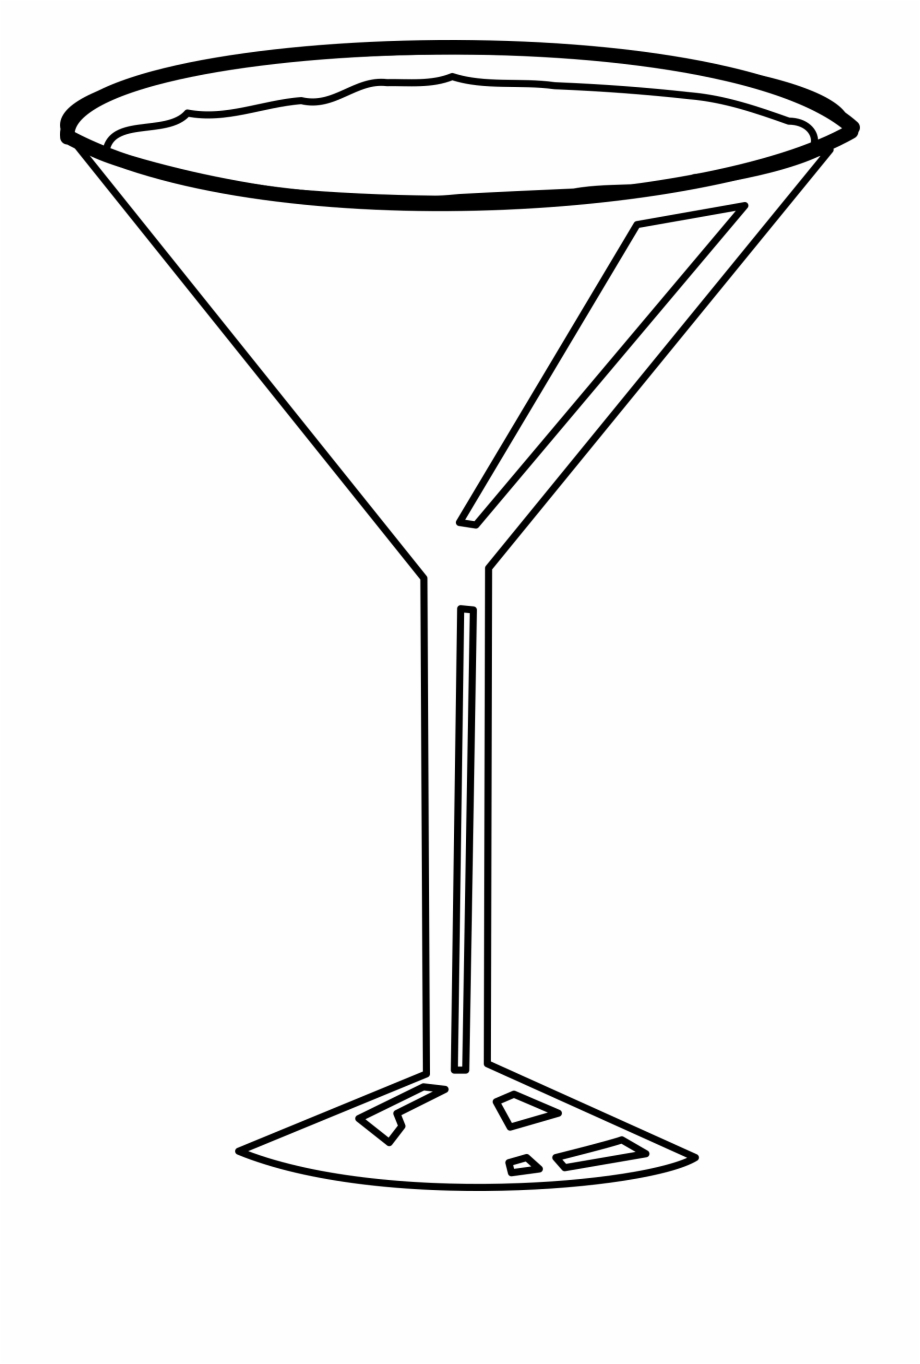 This Free Icons Png Design Of Cocktail Glass.